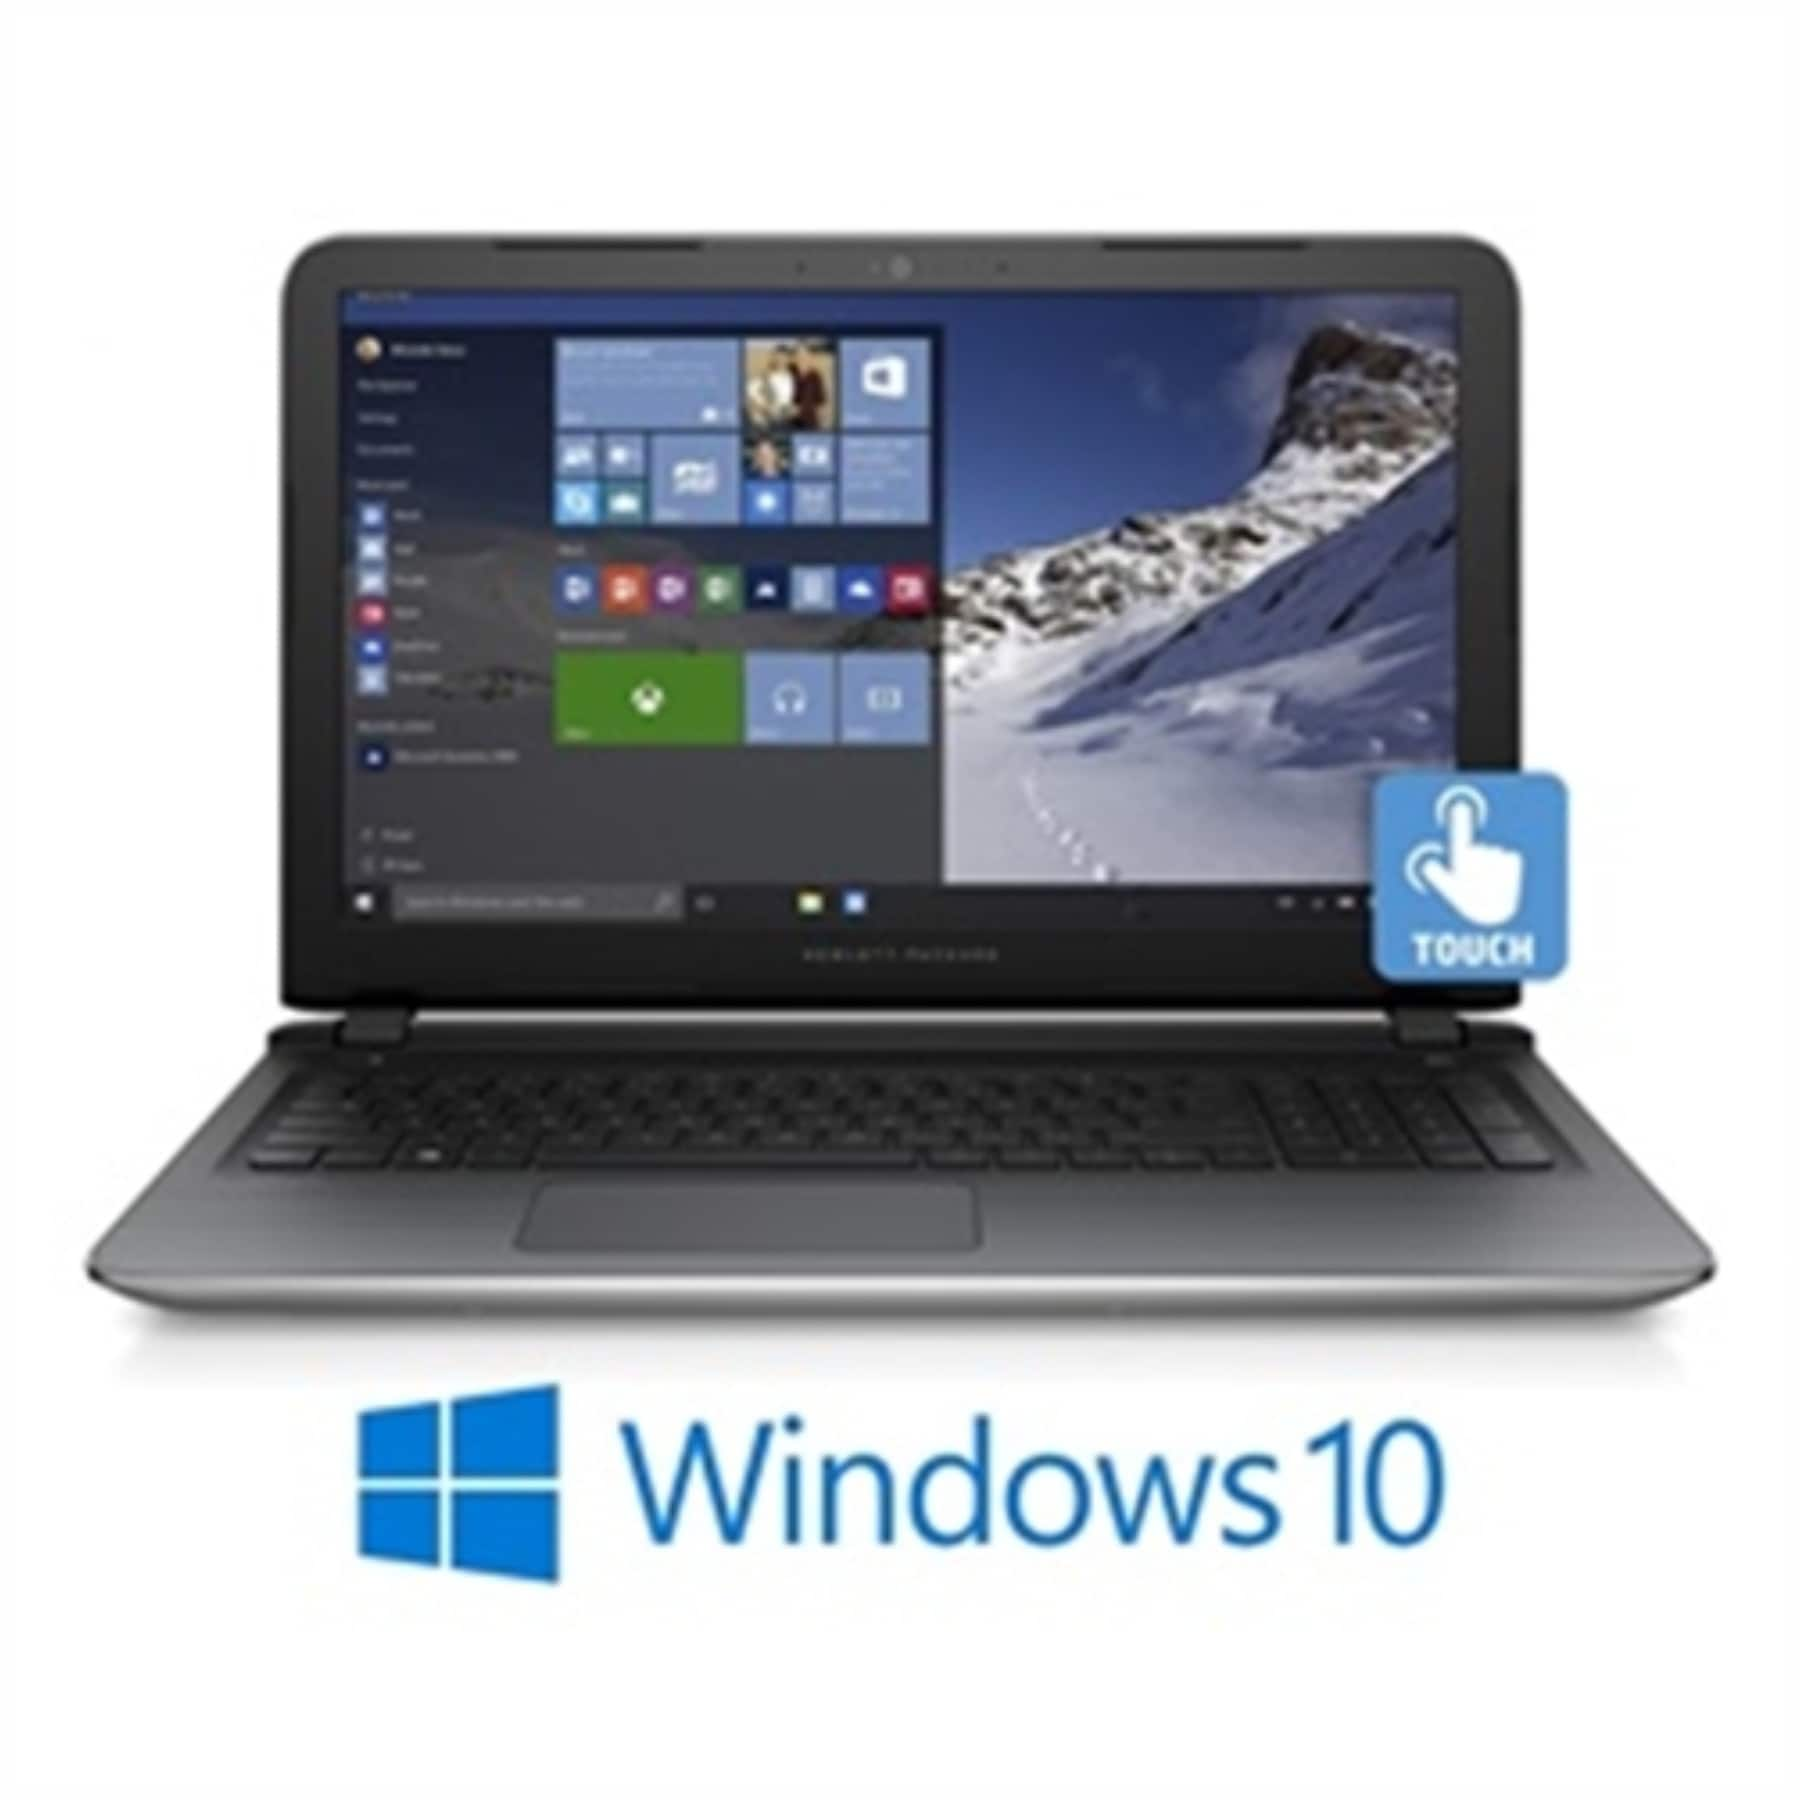 "HP 17-g133cl Quad-Core A10-8780p, 12GB, 17.3"" Full HD 1920x 1080 Touchscreen LED, Radeon 2GB, Backlit Keyboard, Win 10 Laptop (Refurbished) $473.73 FS"